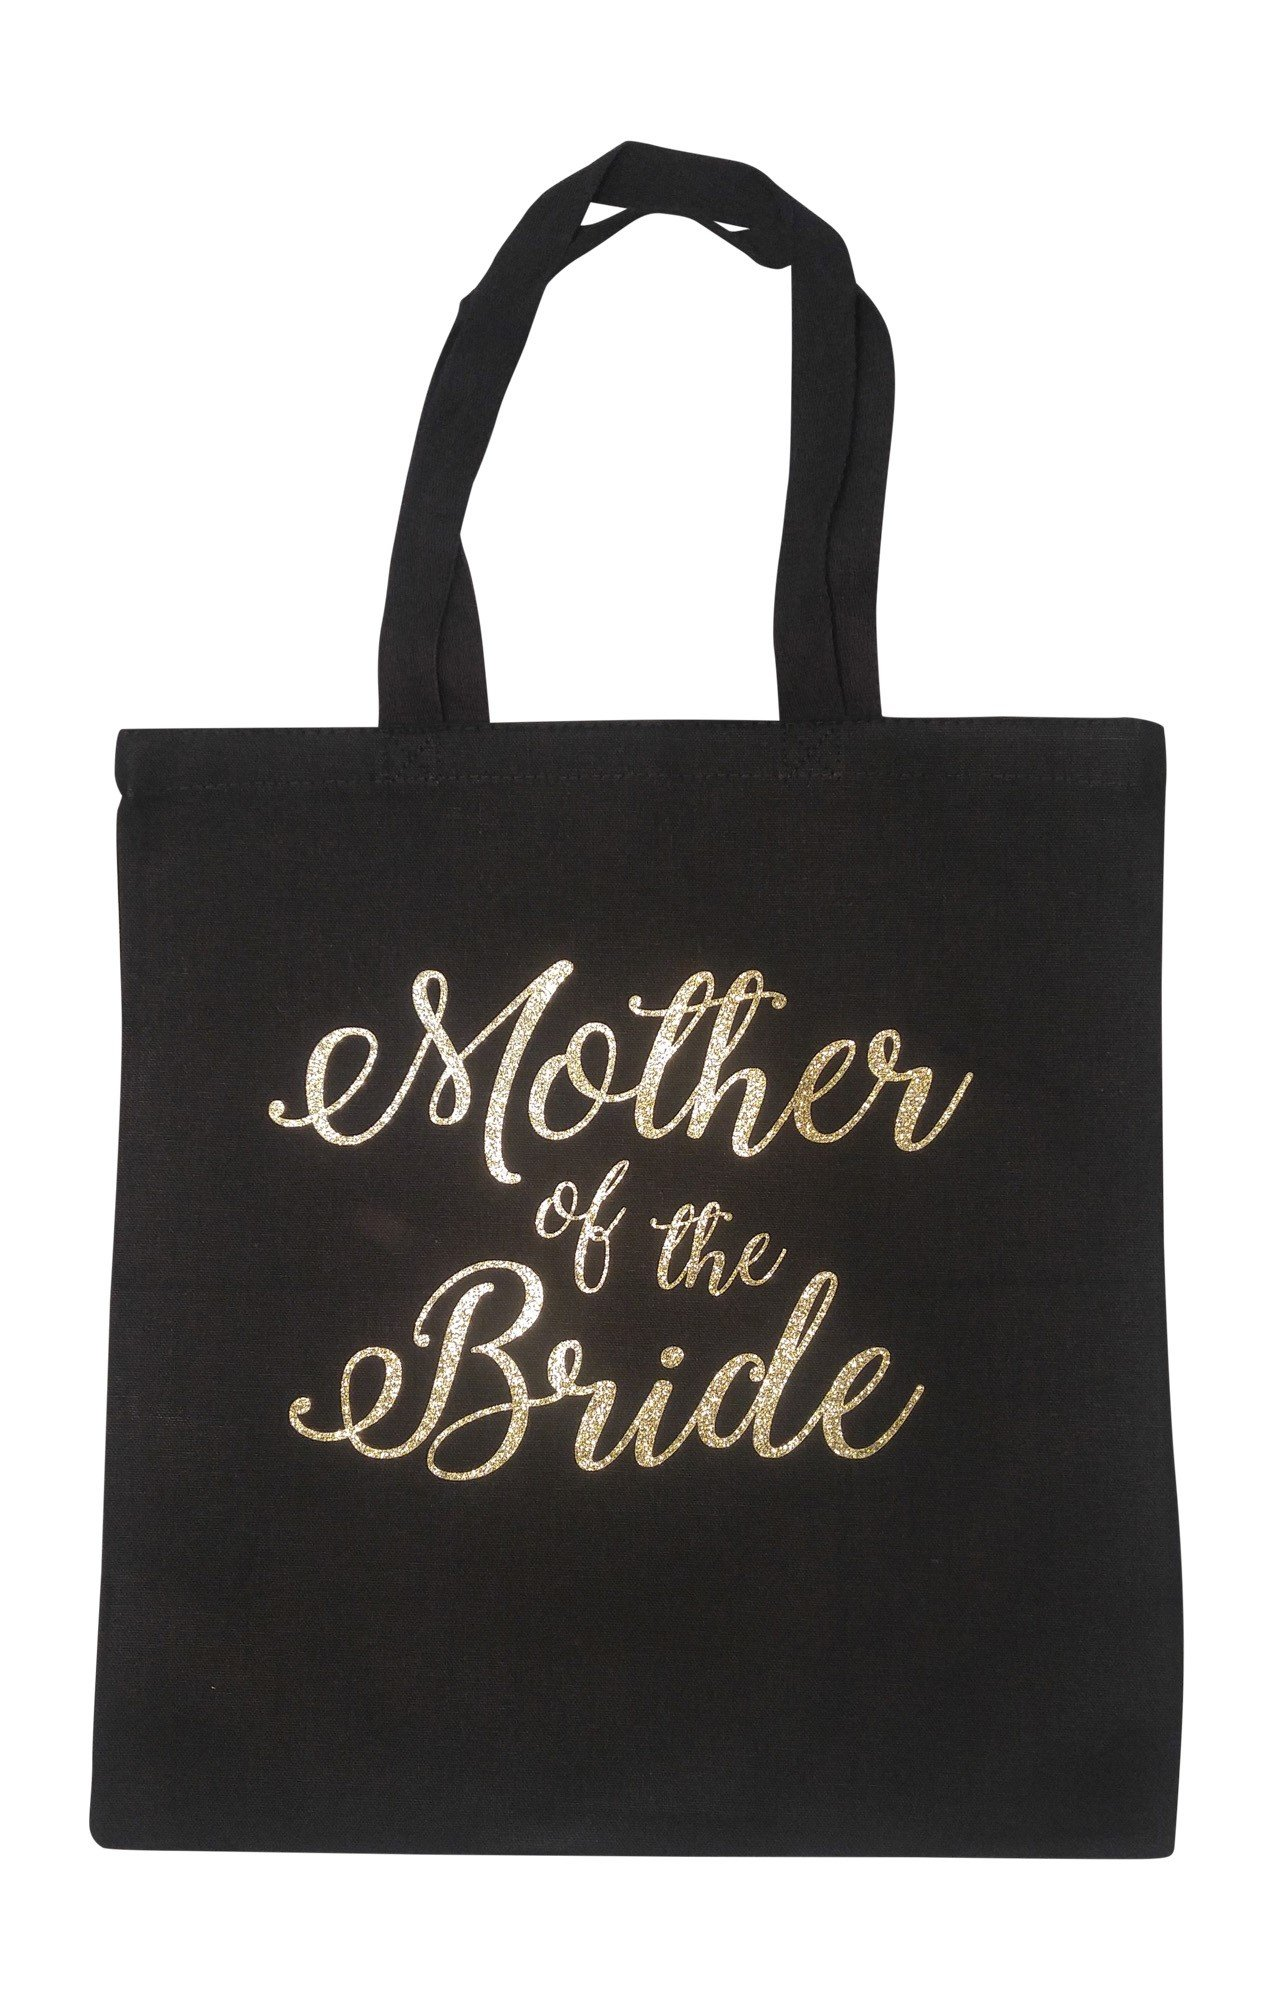 The Spoiled Office Wedding Party Bridal Tote Bag with Gold Lettering - Heavyweight, Large Canvas 15'' x 16'' (Mother of the Bride in Black)